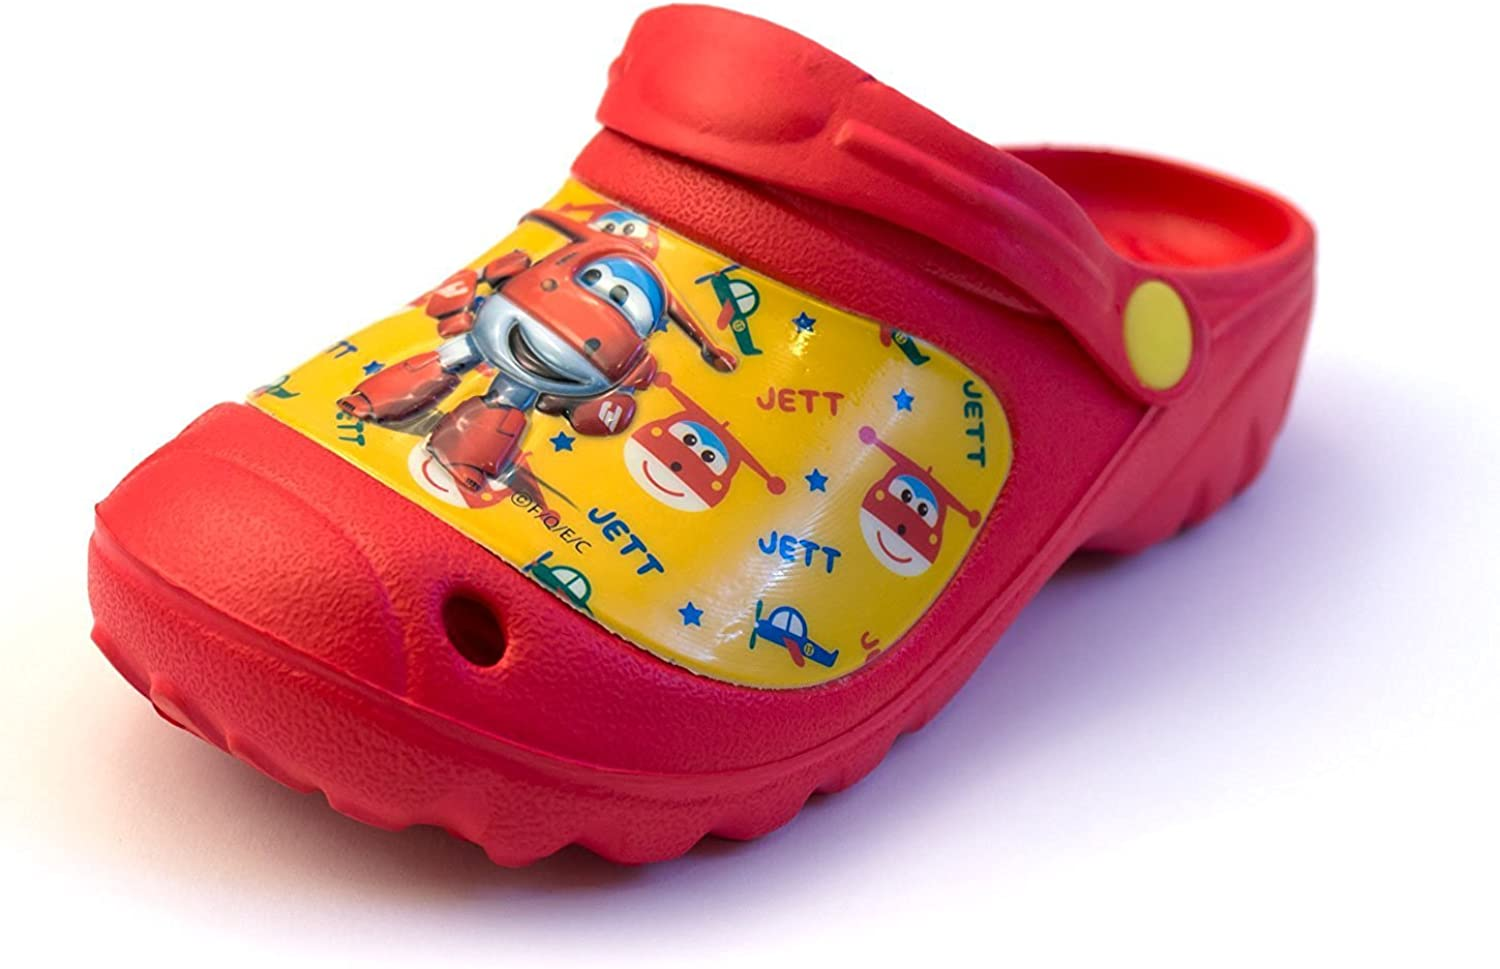 Super Wings Boys Clogs Summer Beach Sandals Red-Size 24-25EUR:  Amazon.co.uk: Shoes & Bags